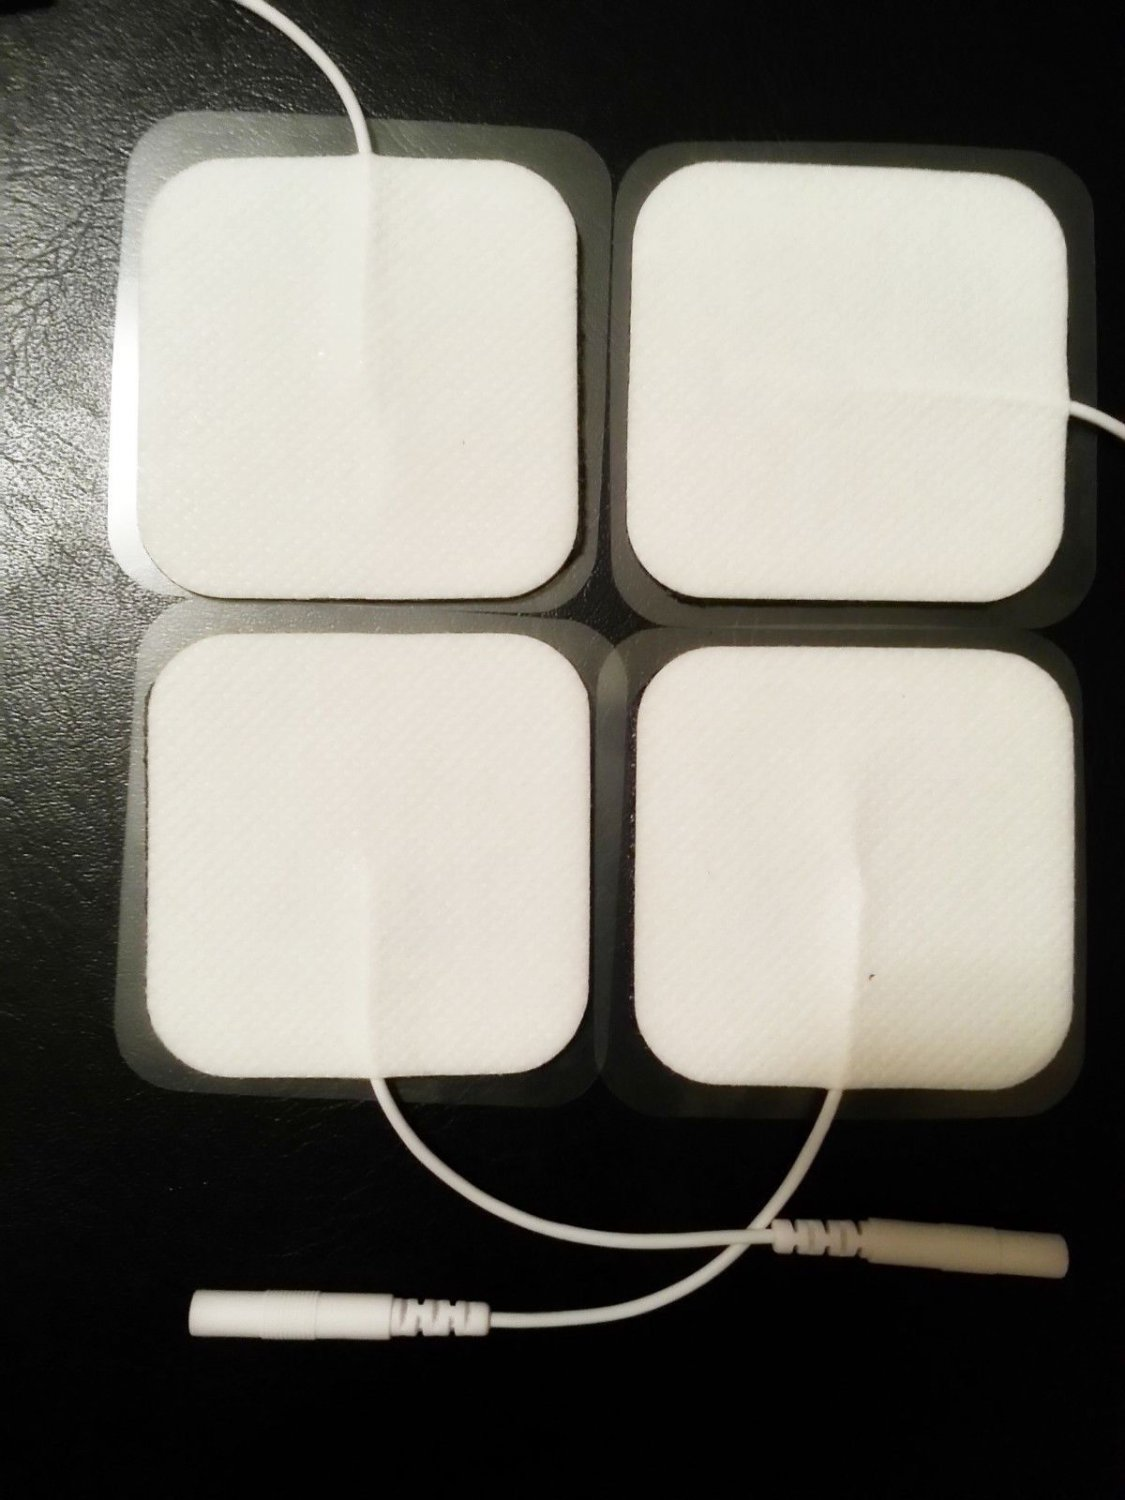 16 Pc Square Electrode Massage Wired Pads for EMSI-2000 2001 2500 5000 Massagers